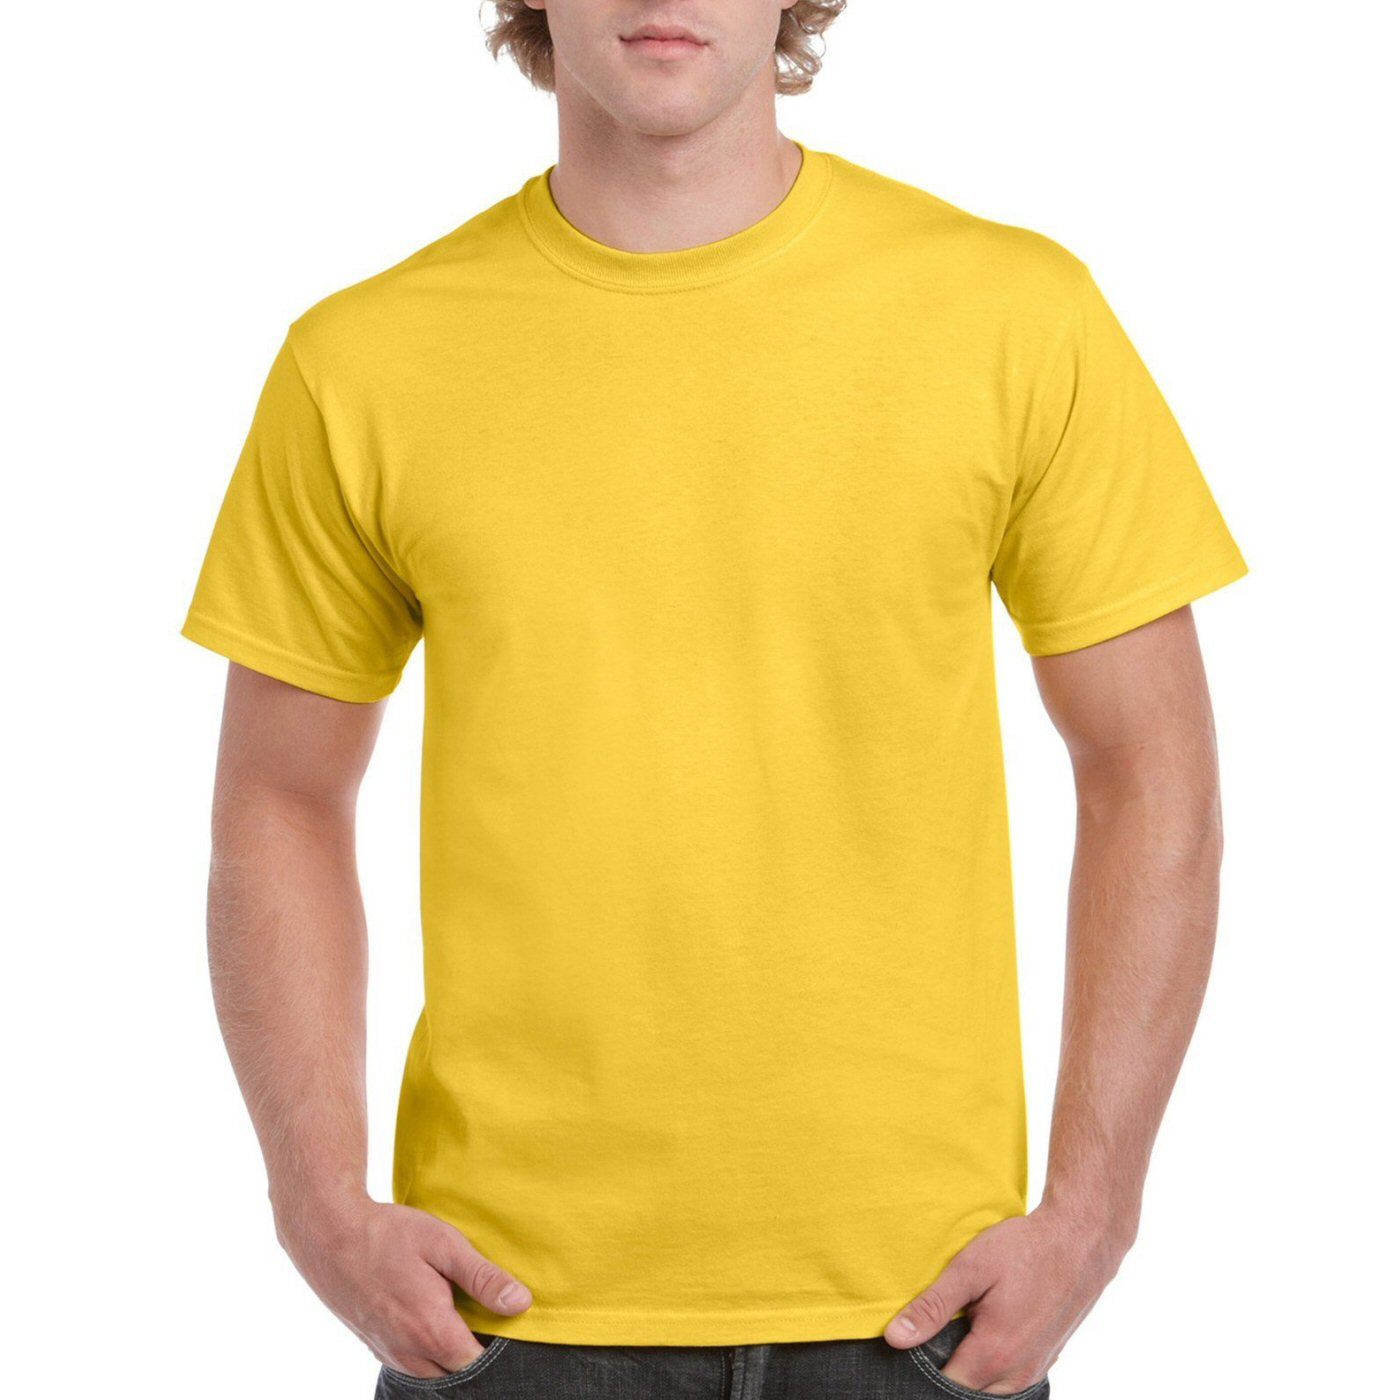 e171af05898435 Buy Plain Round Neck T-Shirts online at low prices | Xtees